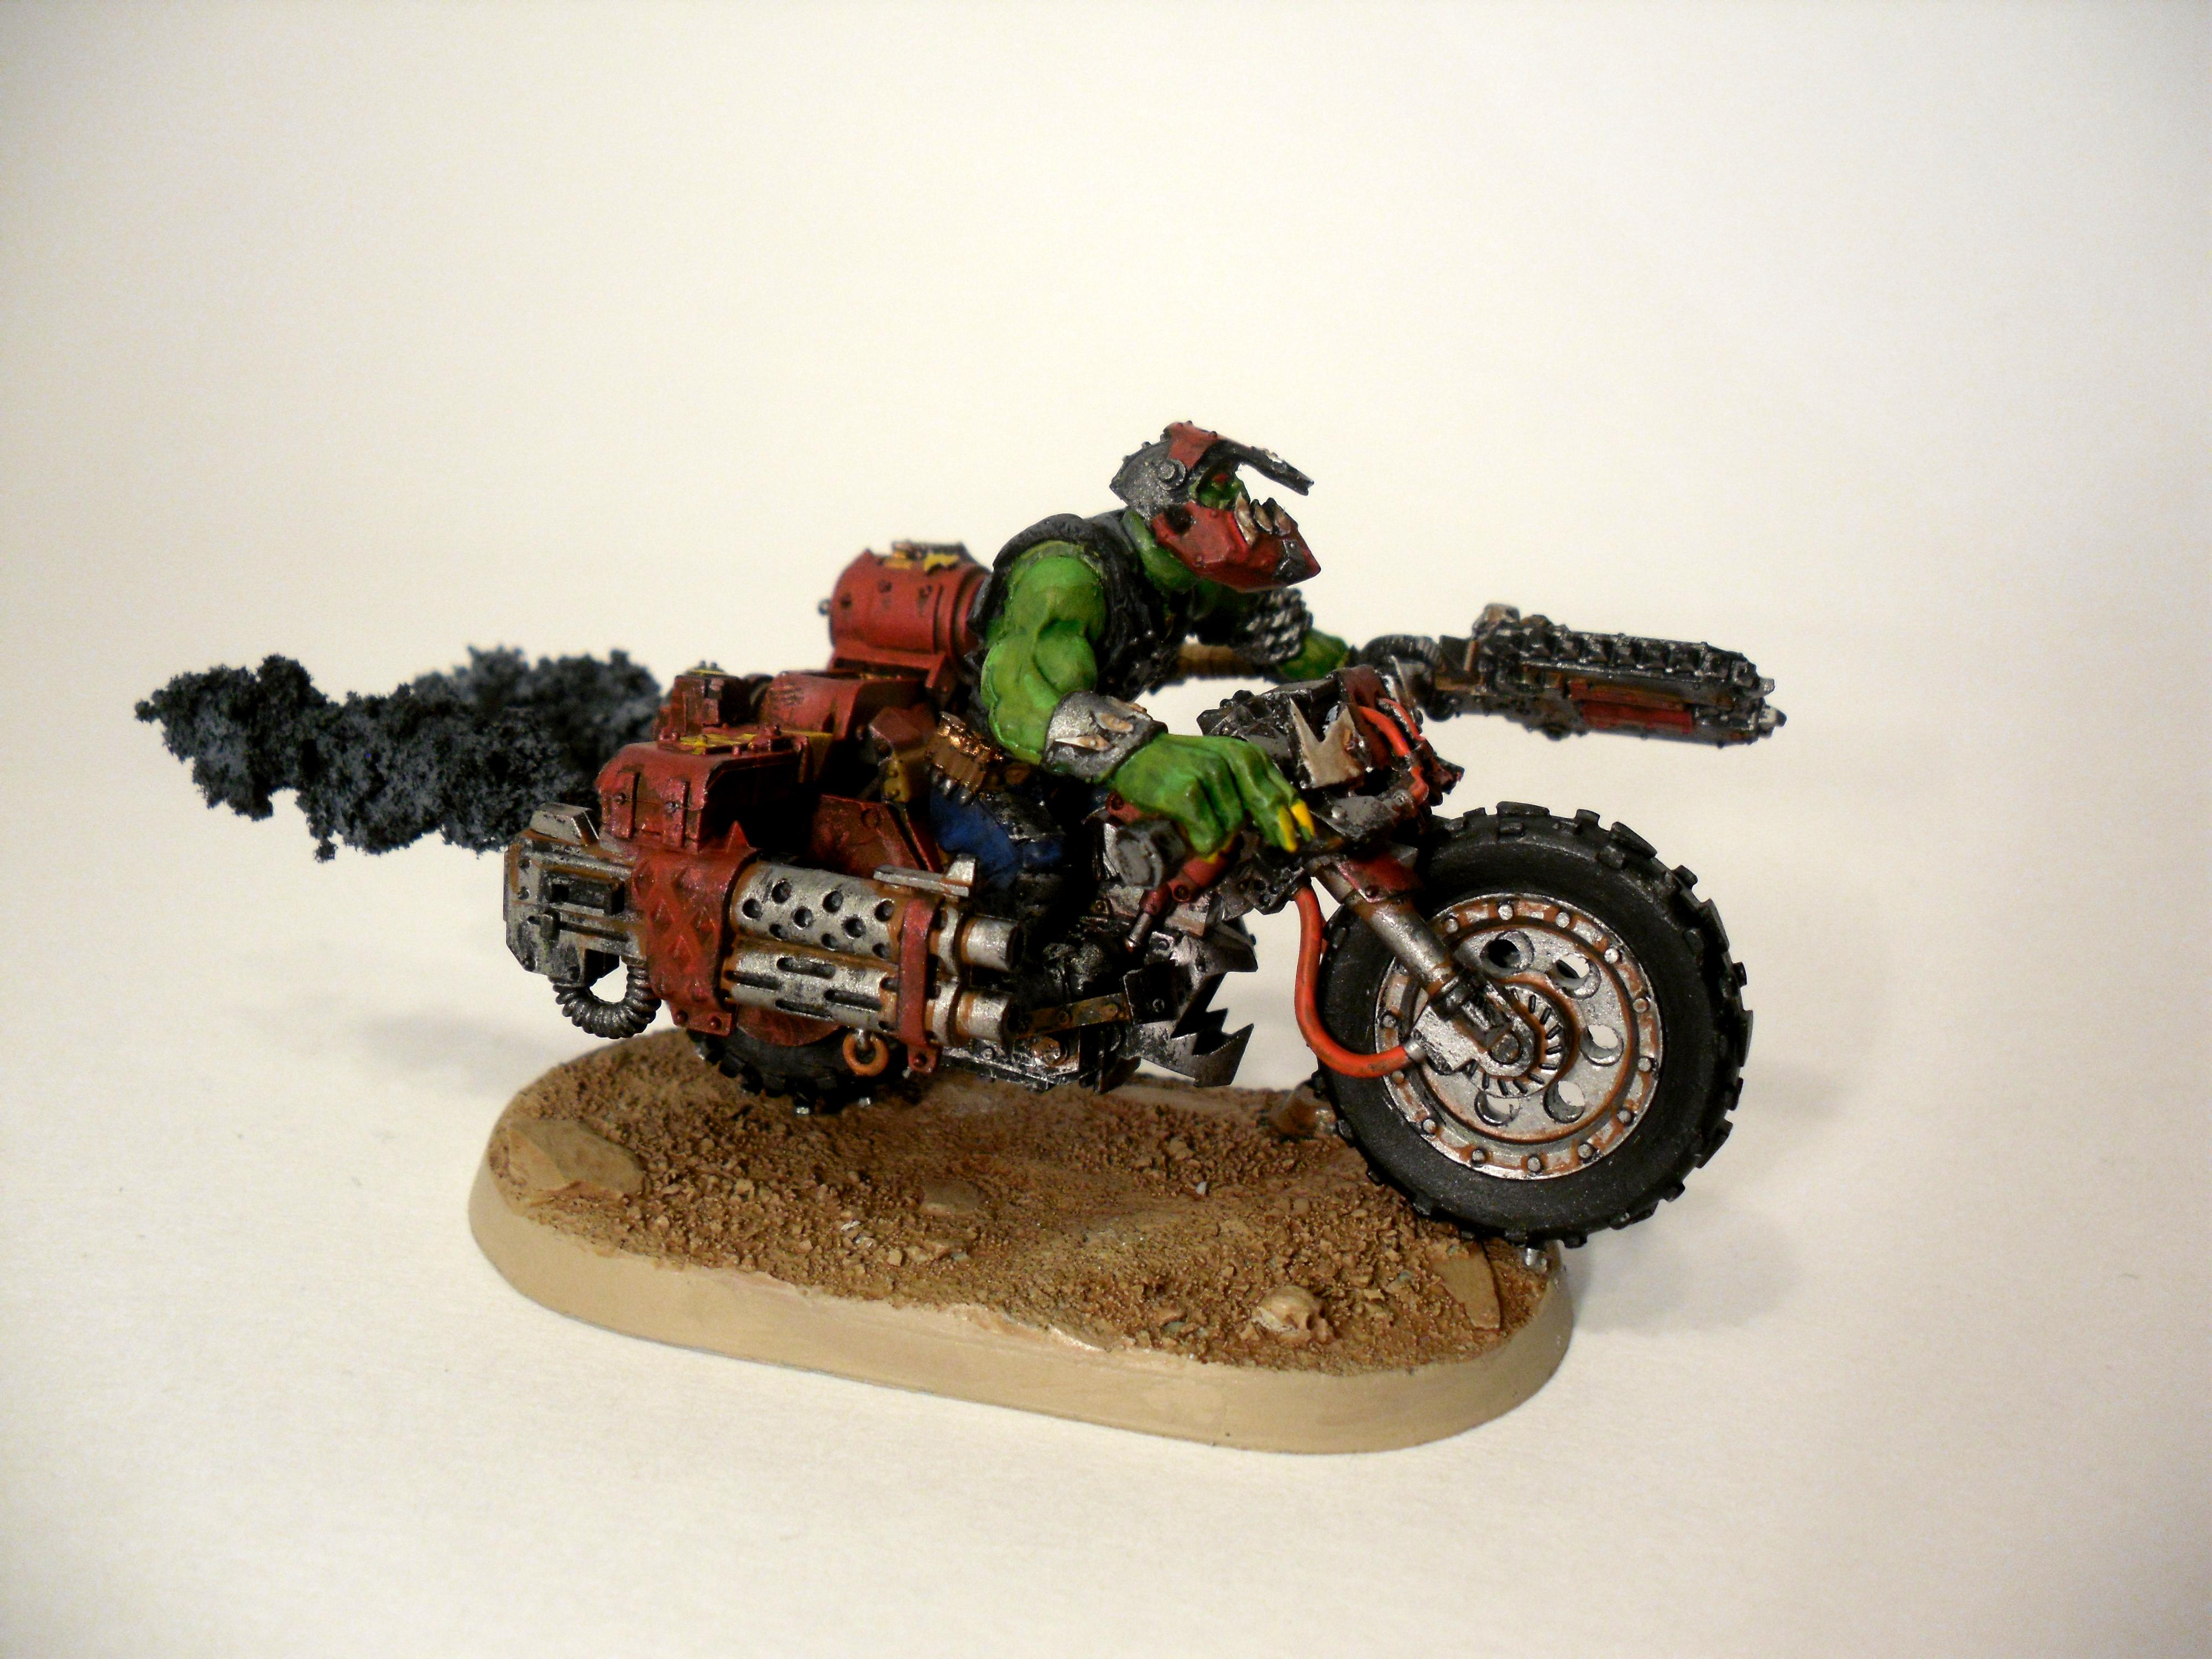 Bike, Nob, Nob Bikers, Ork Nobz, Orks